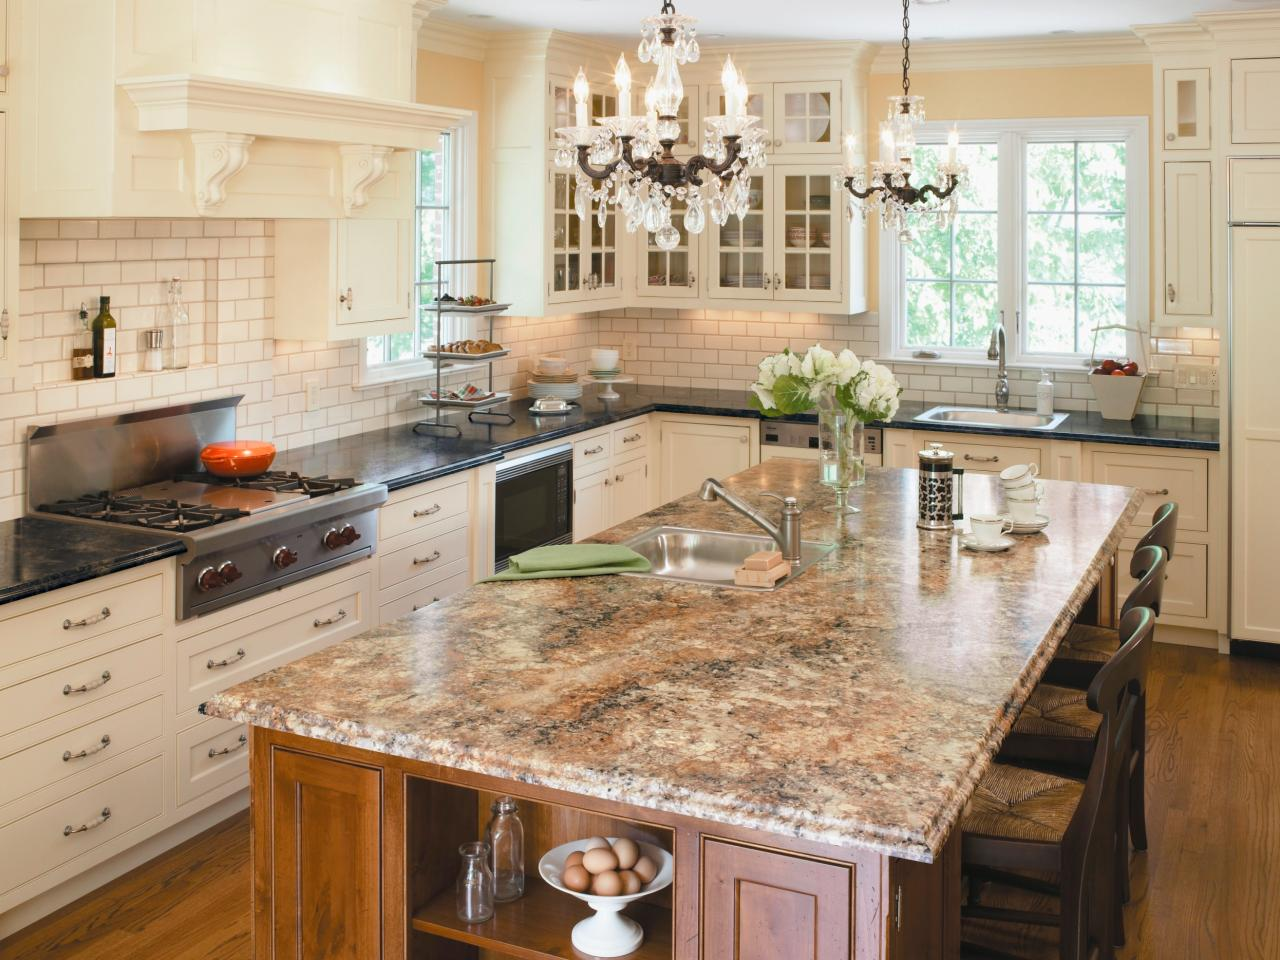 Kitchen Countertops Ideas : Choosing kitchen countertops hgtv